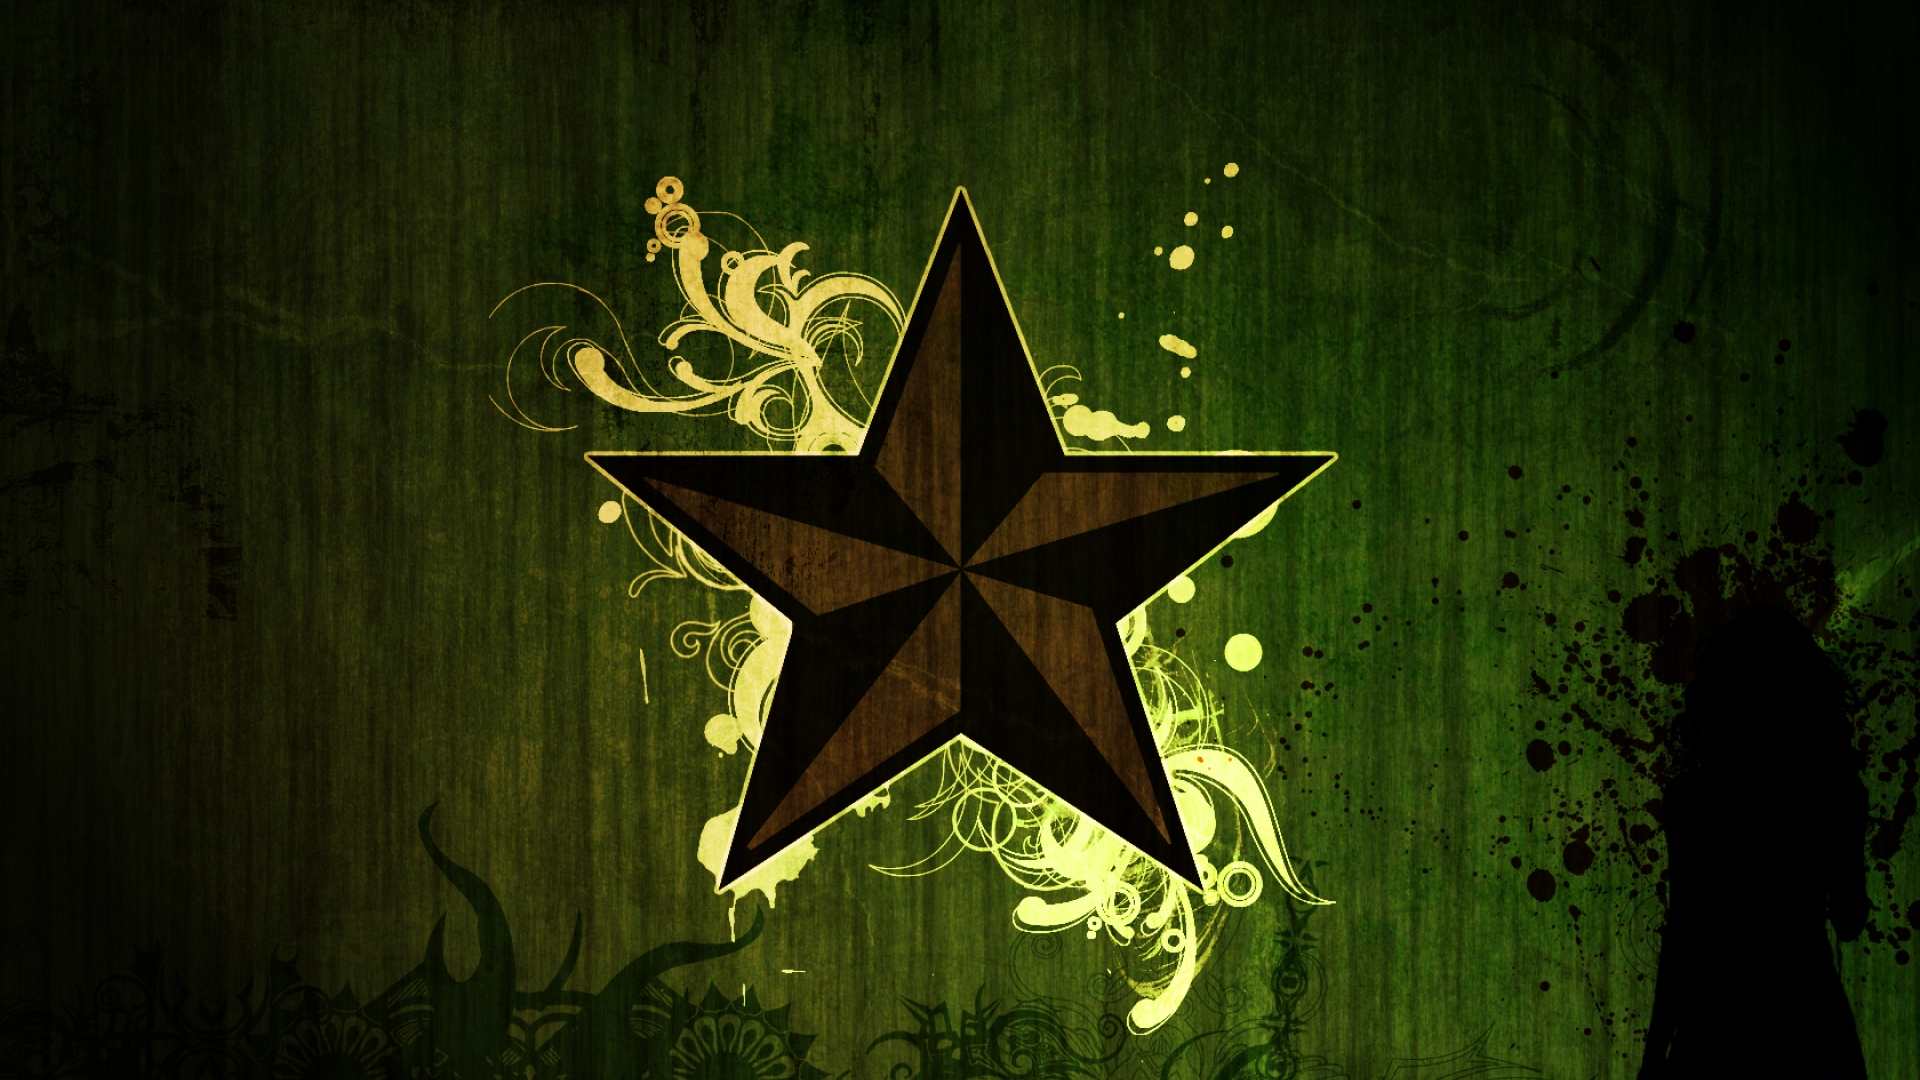 grunge star wallpaper - hd wallpapers